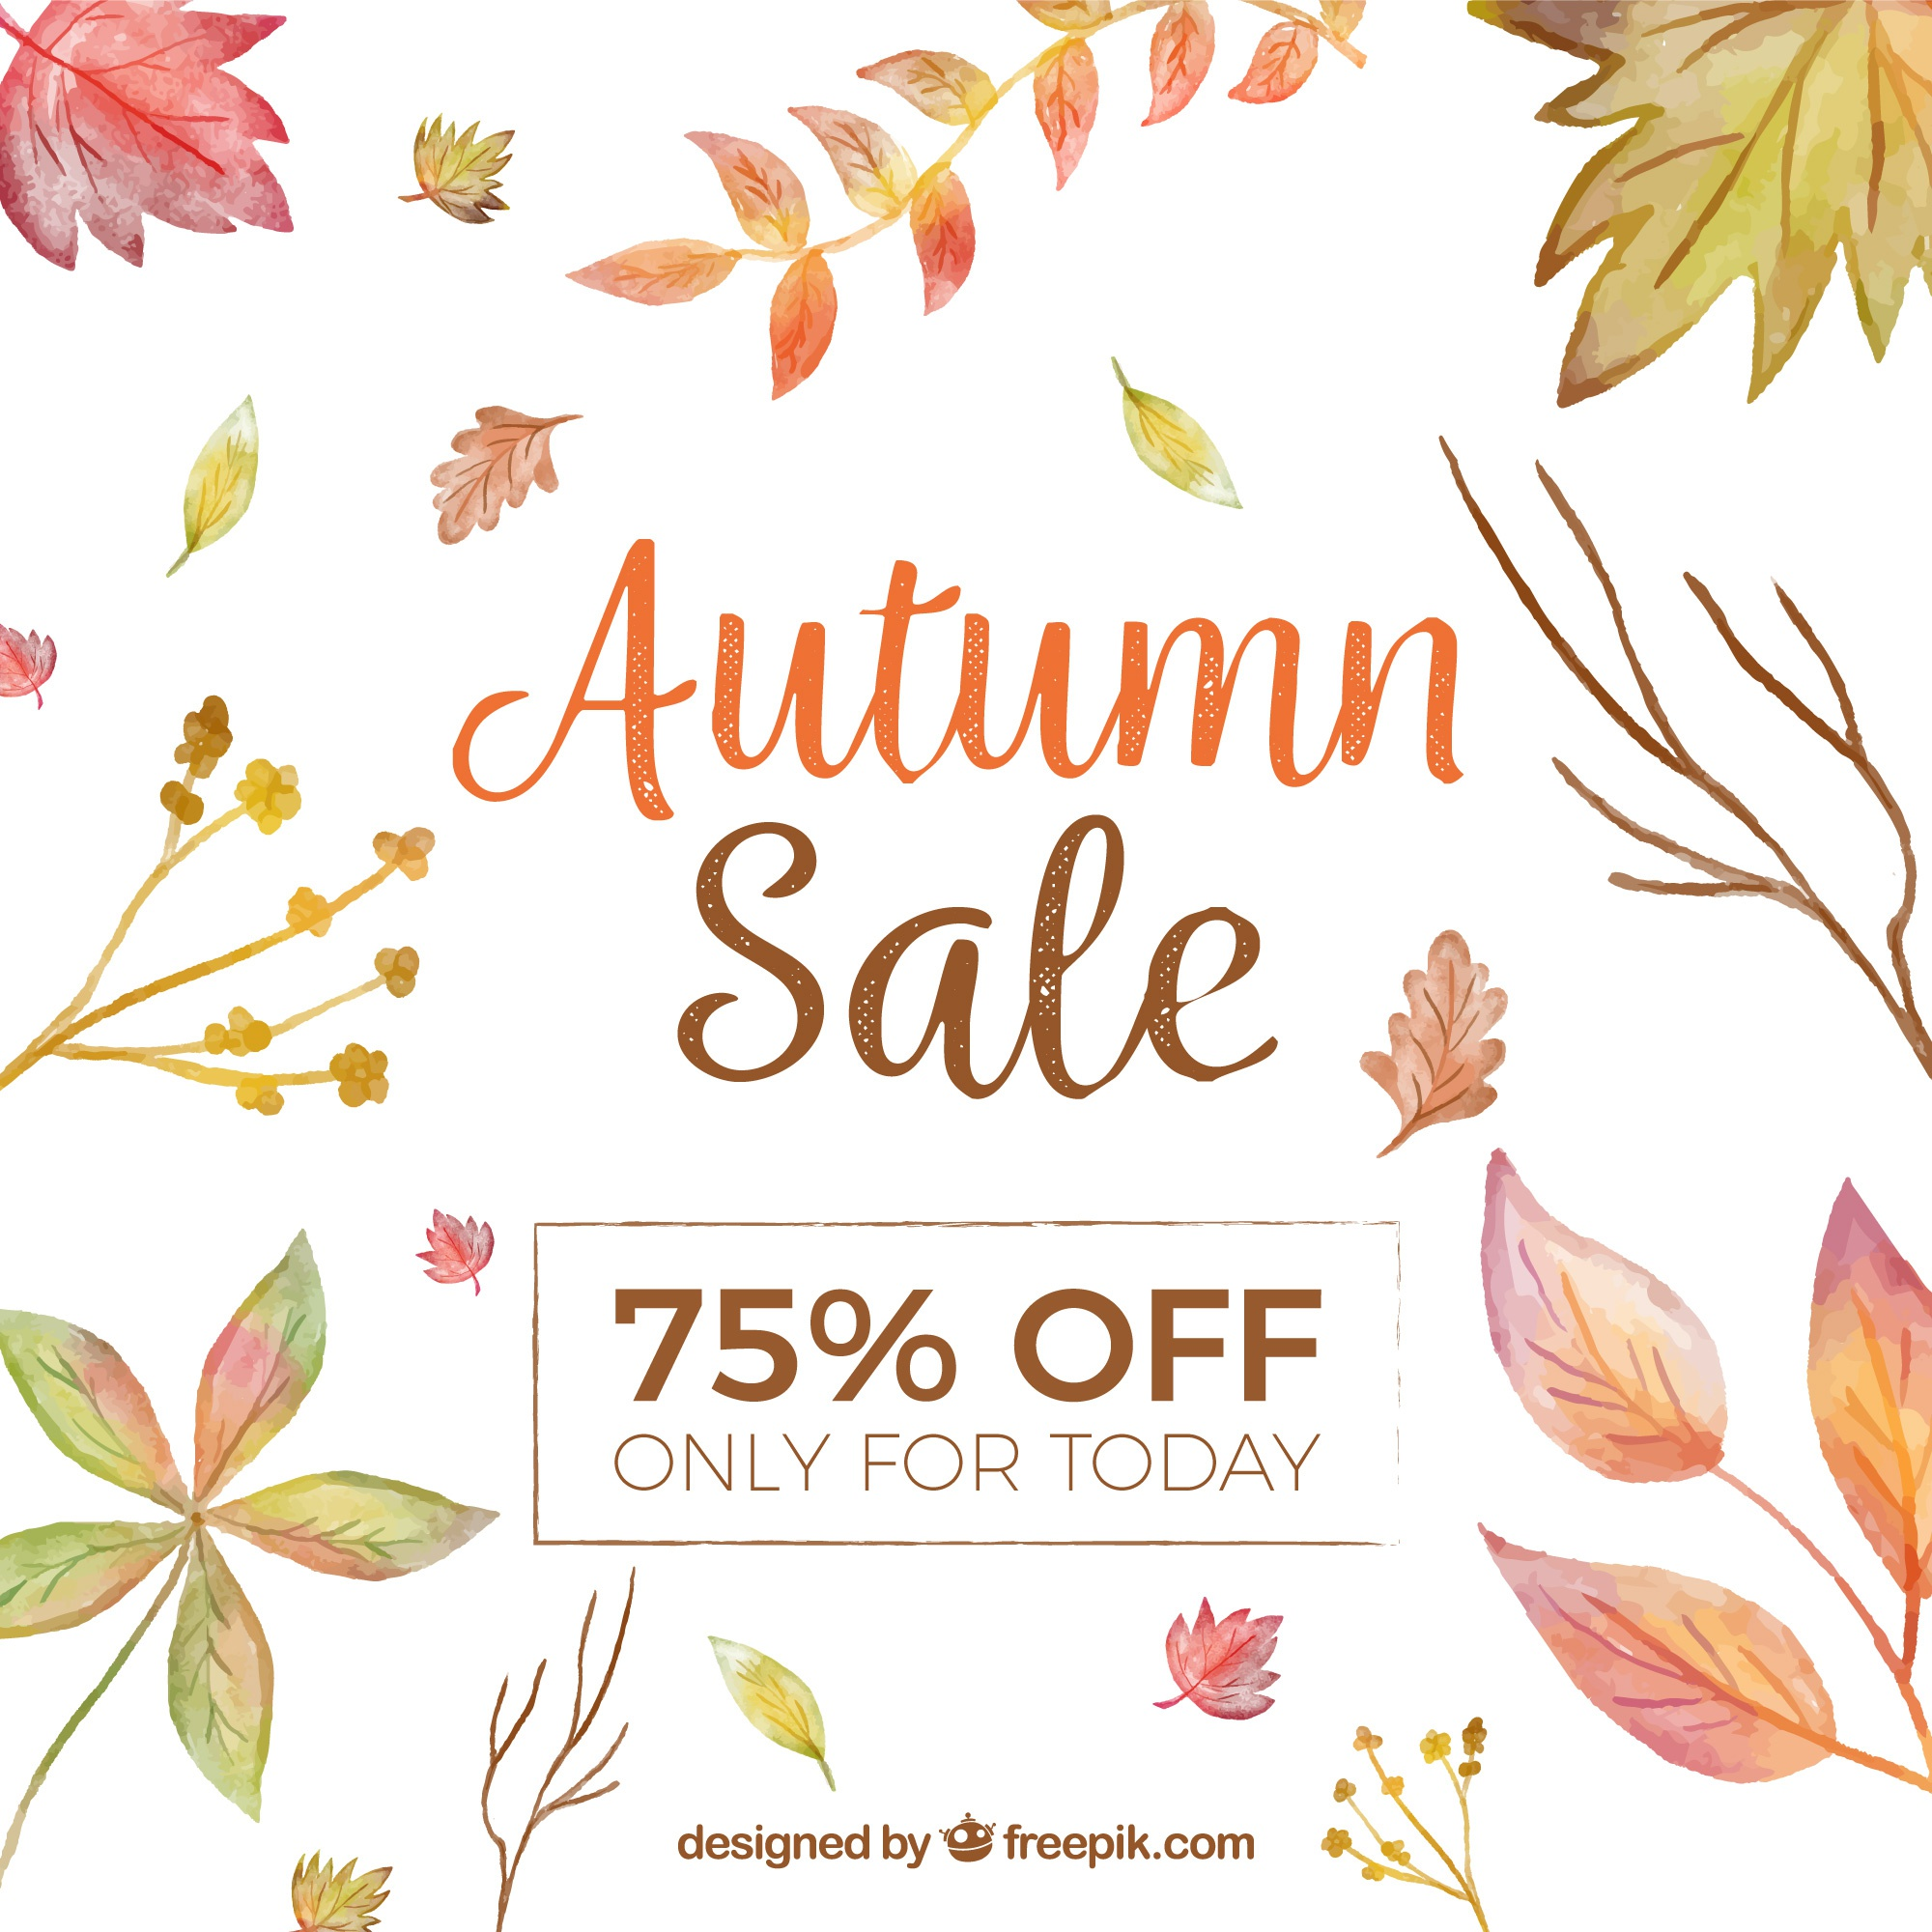 Autumn sale background with watercolor leaves